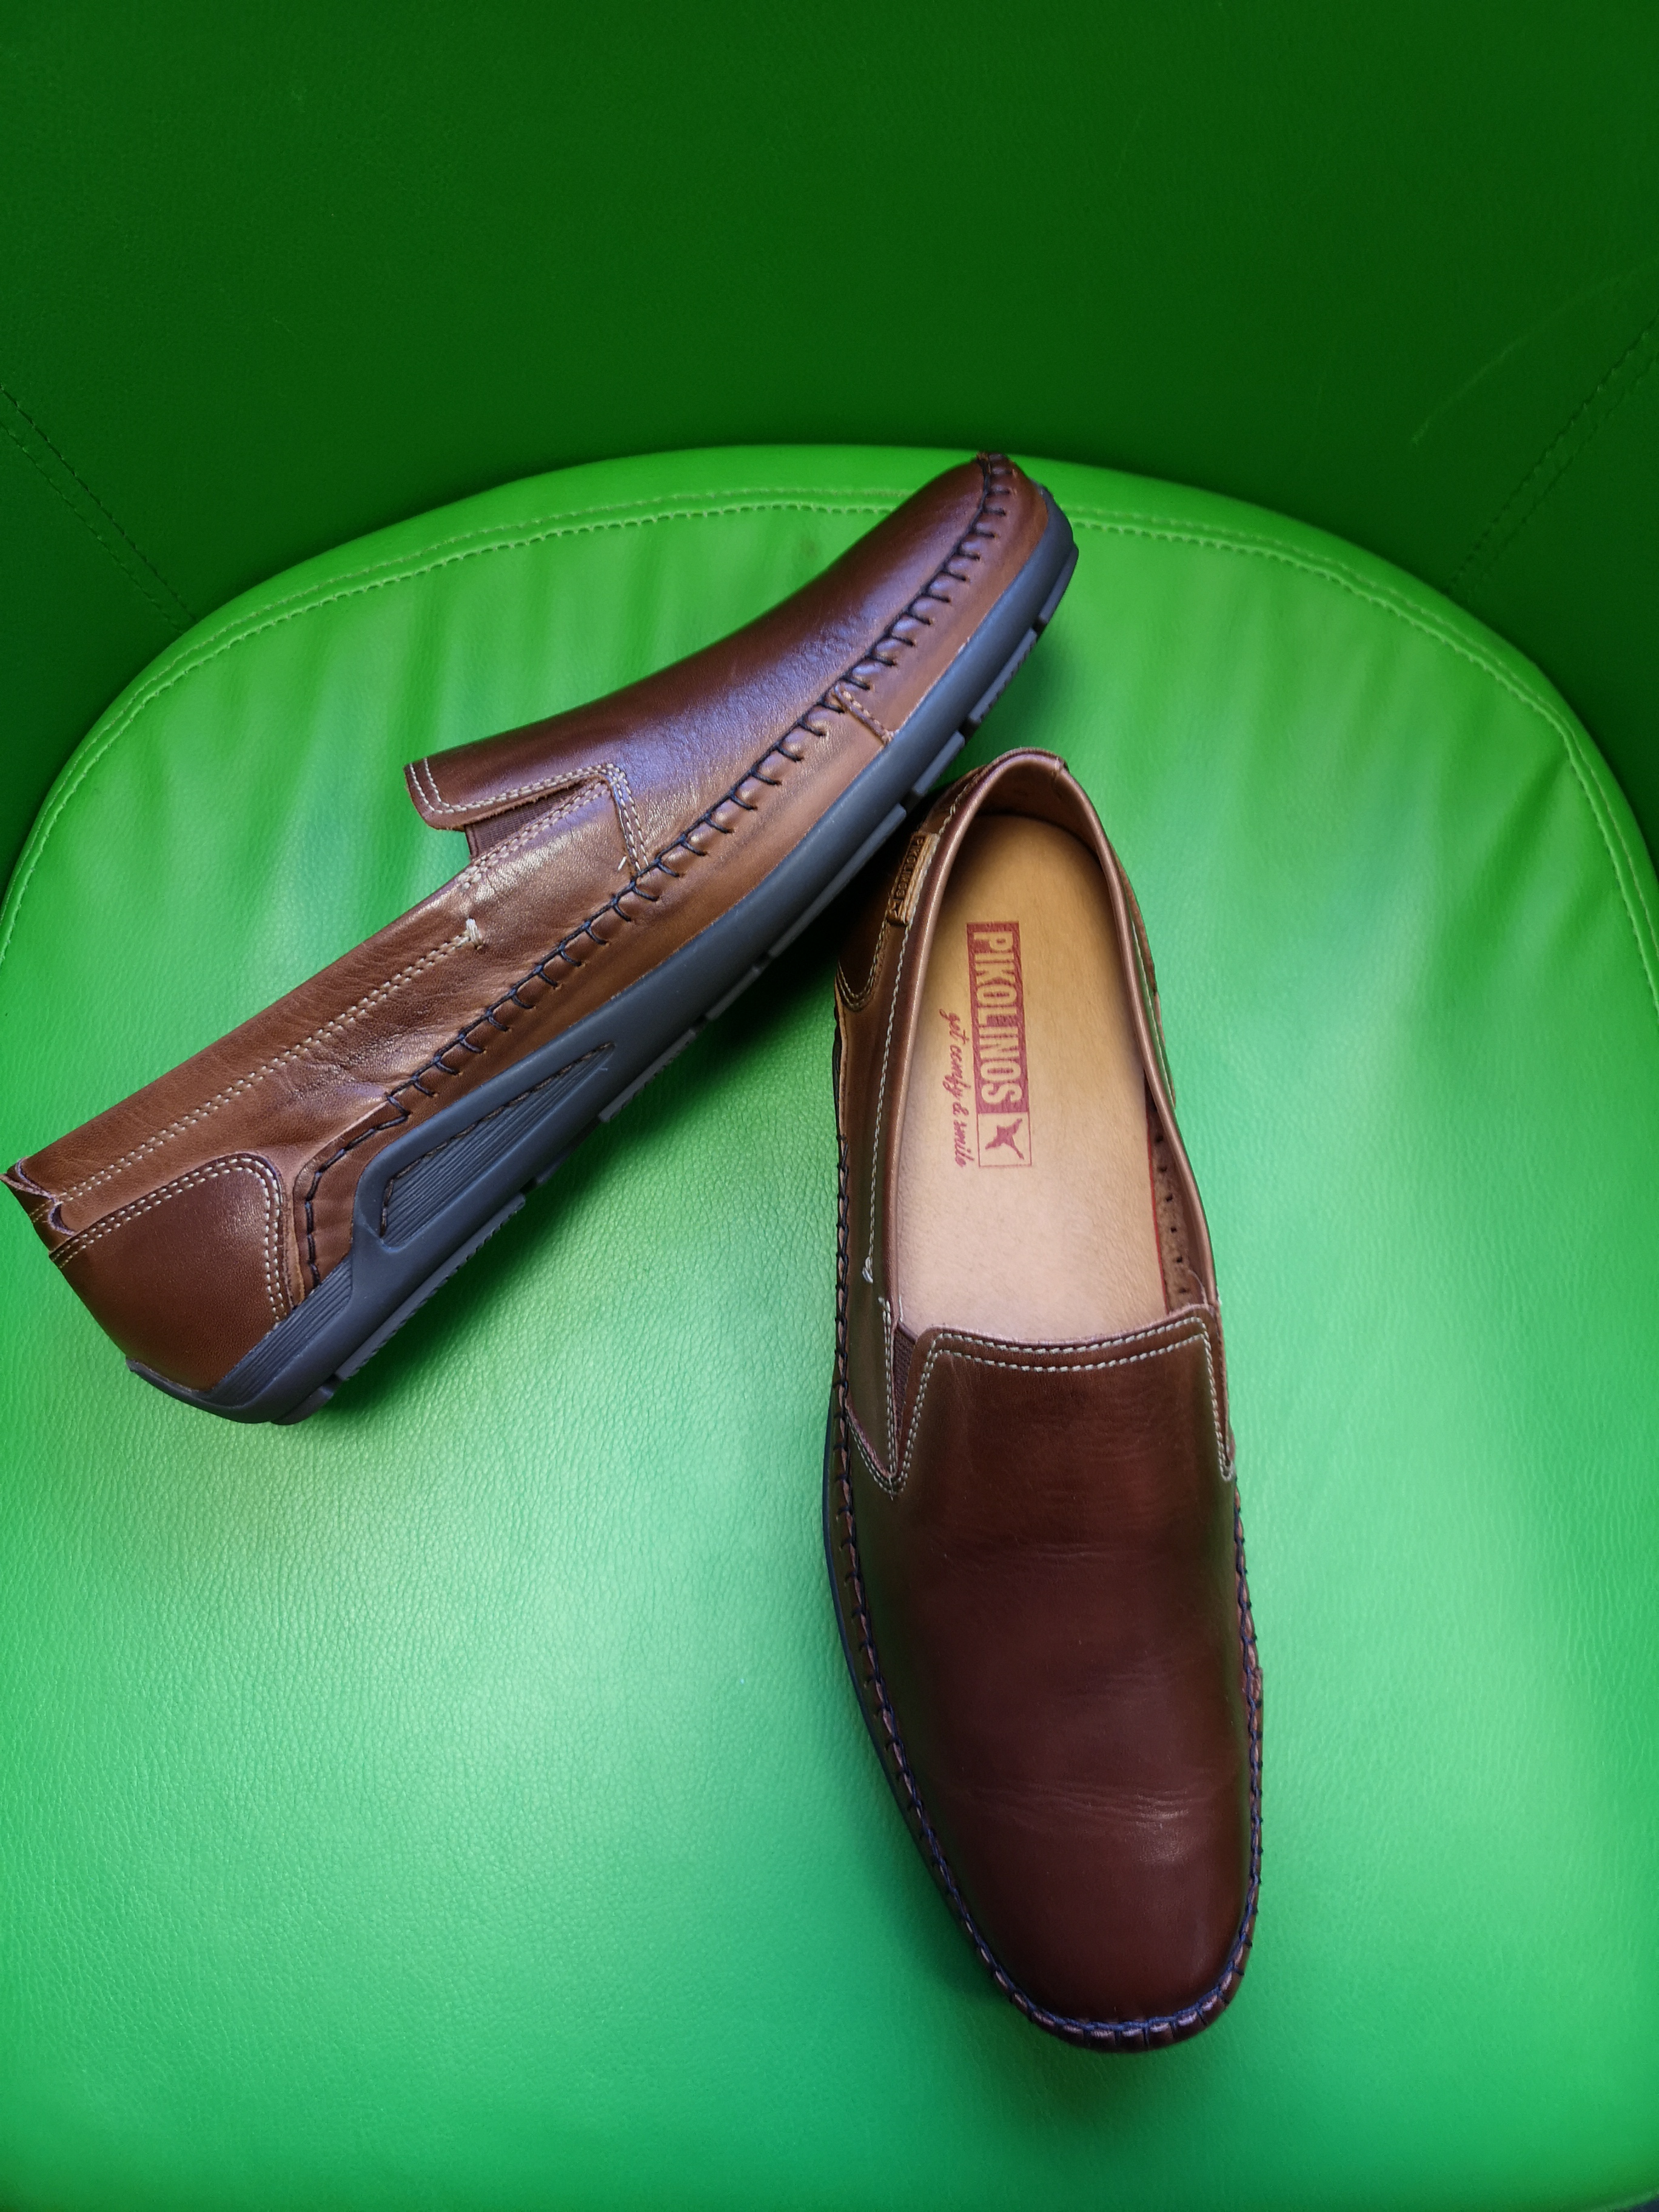 Bewick upon Tweed-Lime Shoe Co-Pikolinos-Tan-Gents-slip on-shoes-elastic sides-summer-spring